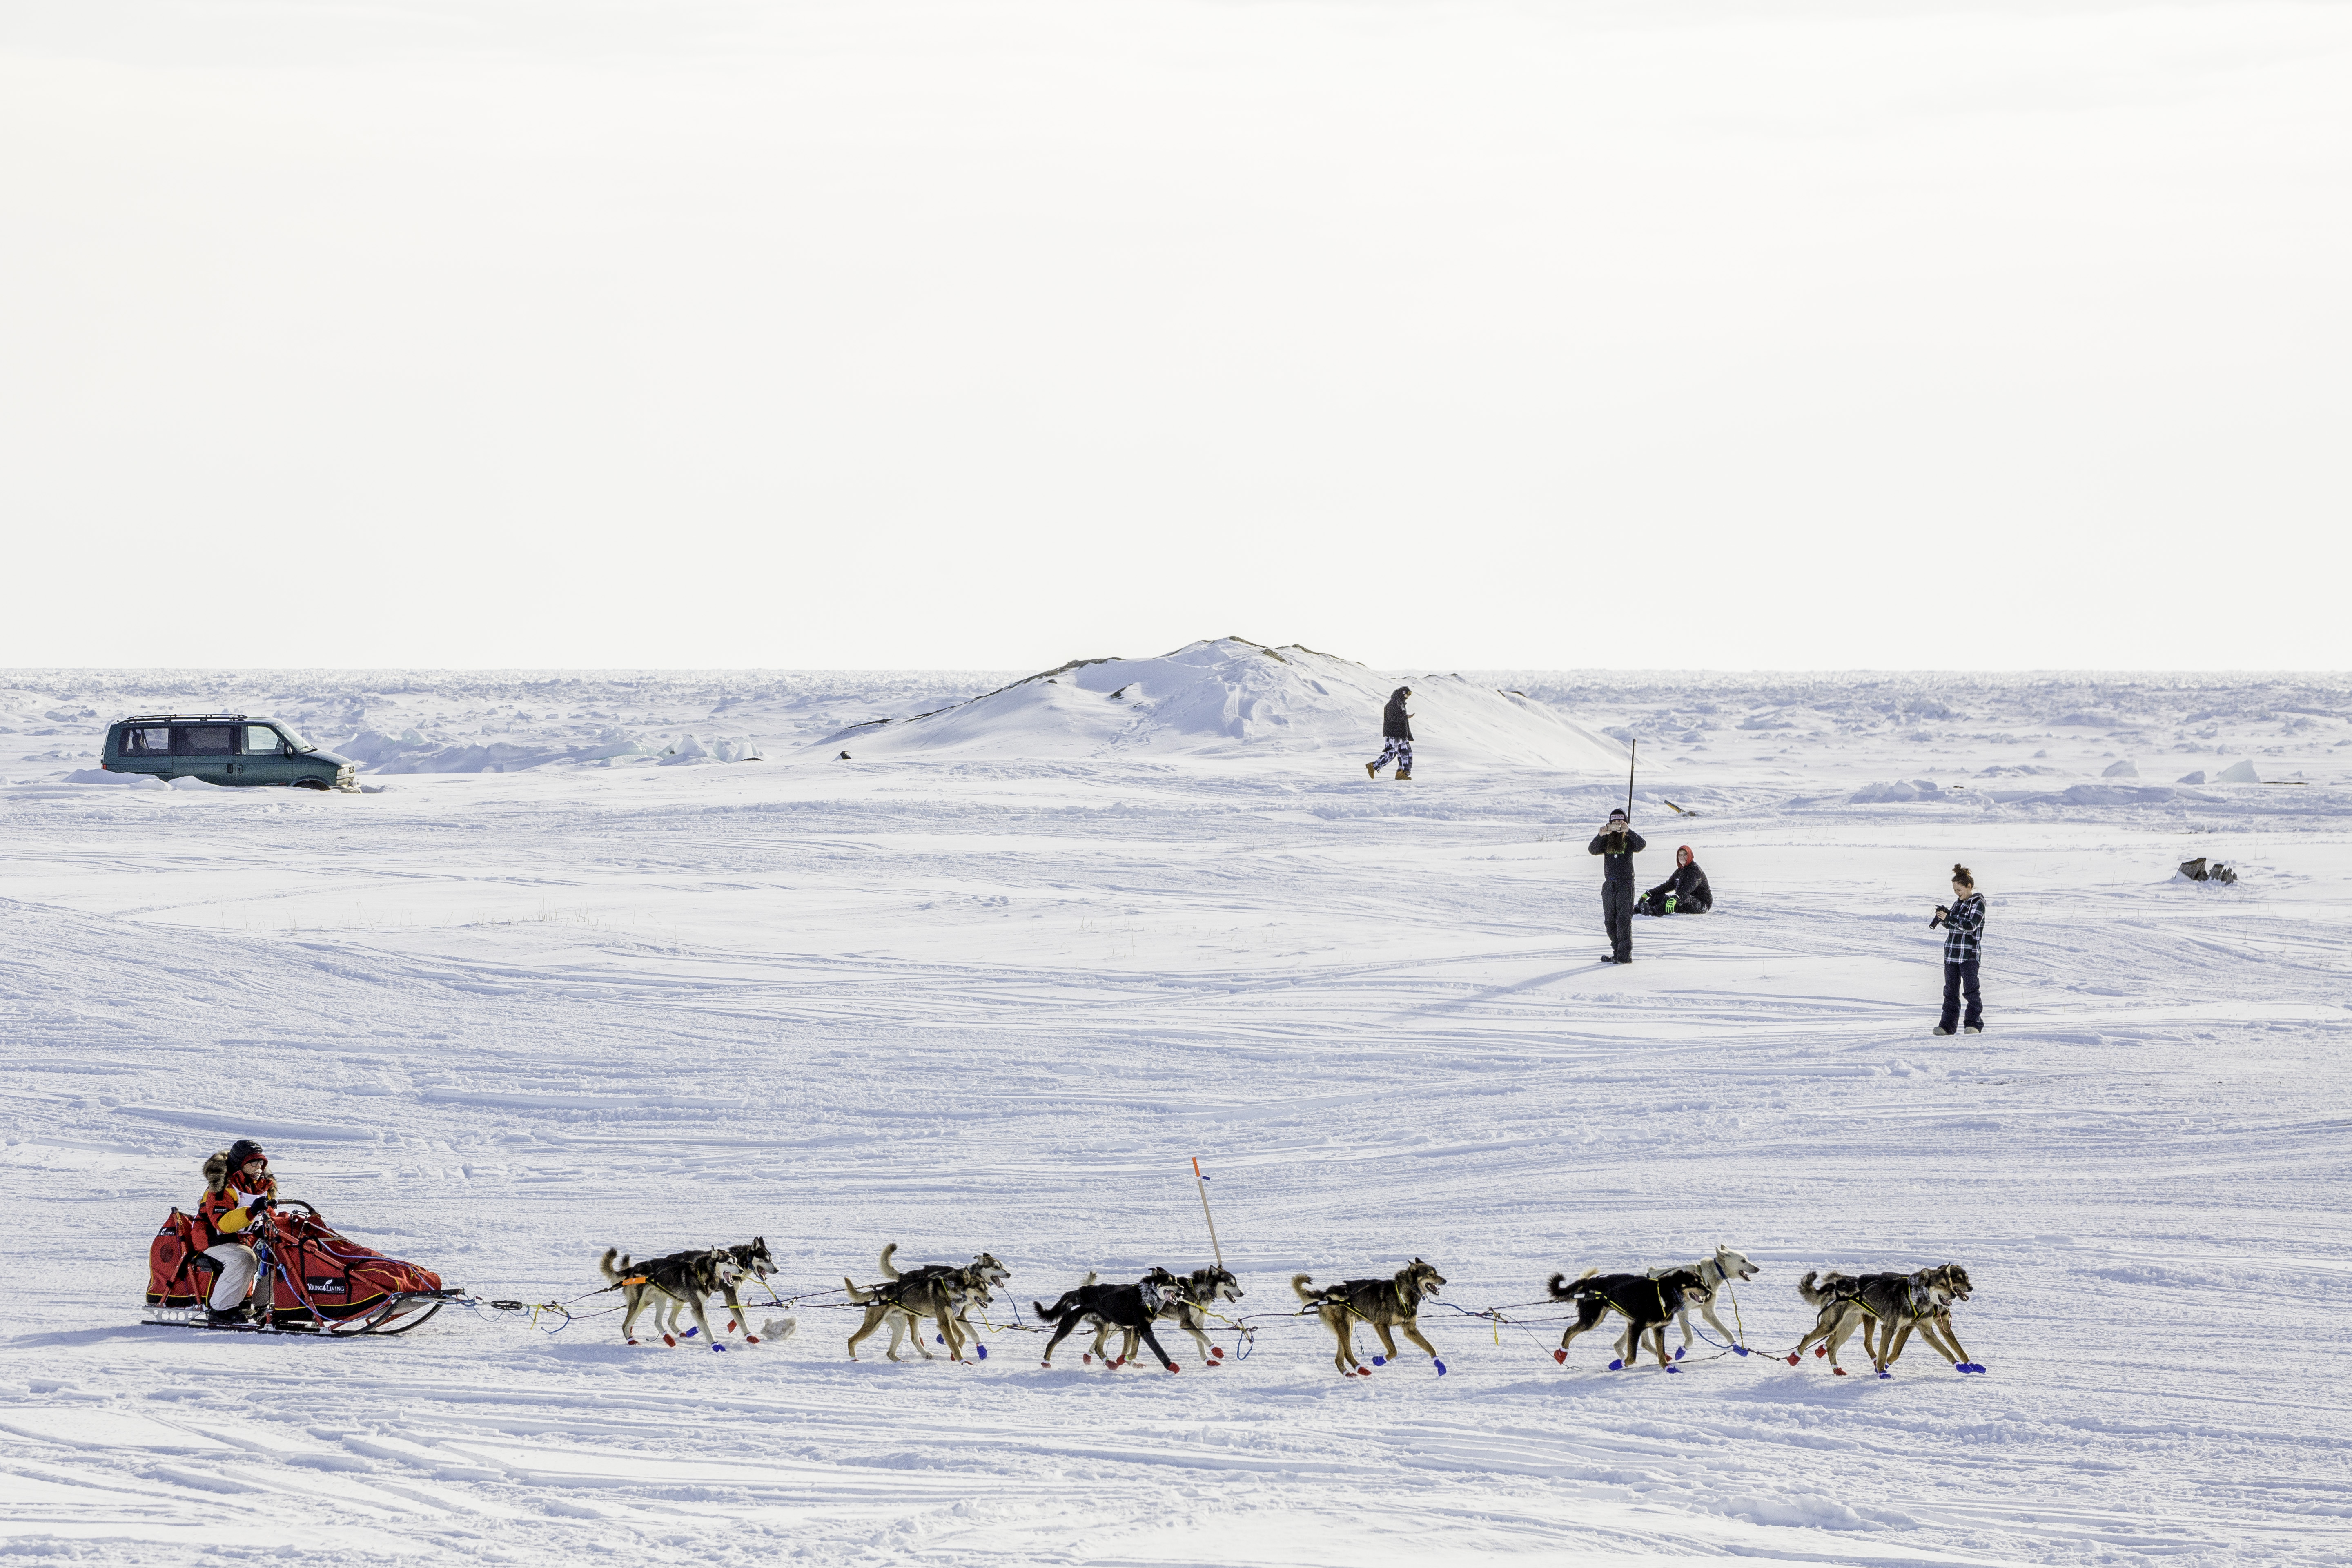 Iditarod 2017 musher and champ, Mitch Seavey, heads for the finish line in Nome.